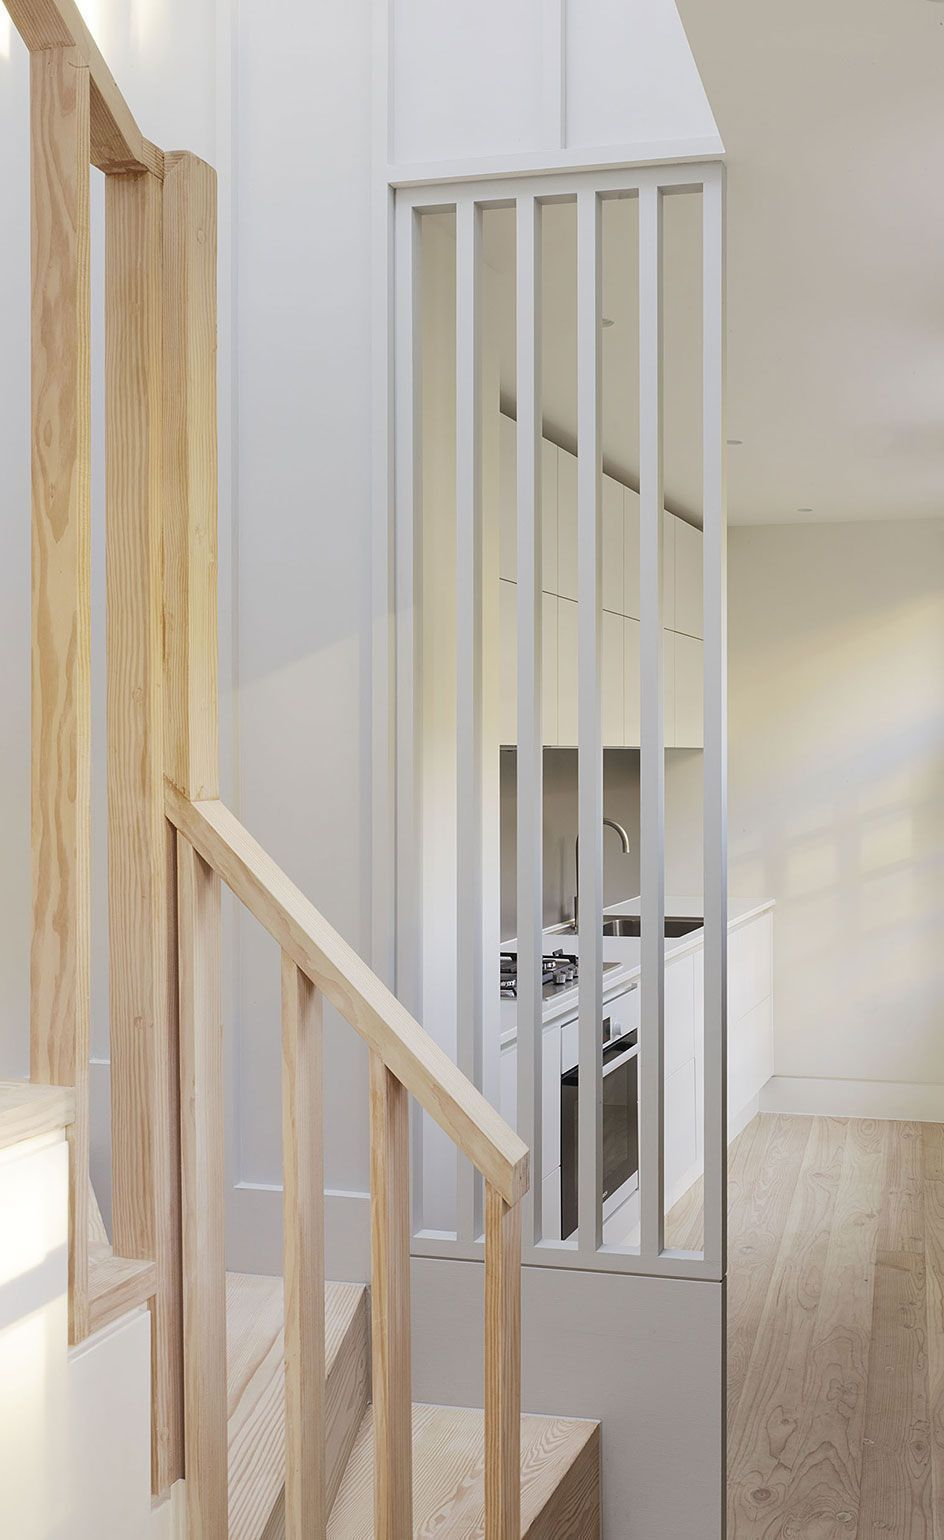 london mews interior #london #mews ~ london mews & london mews house & london mews interior & london mews house interior